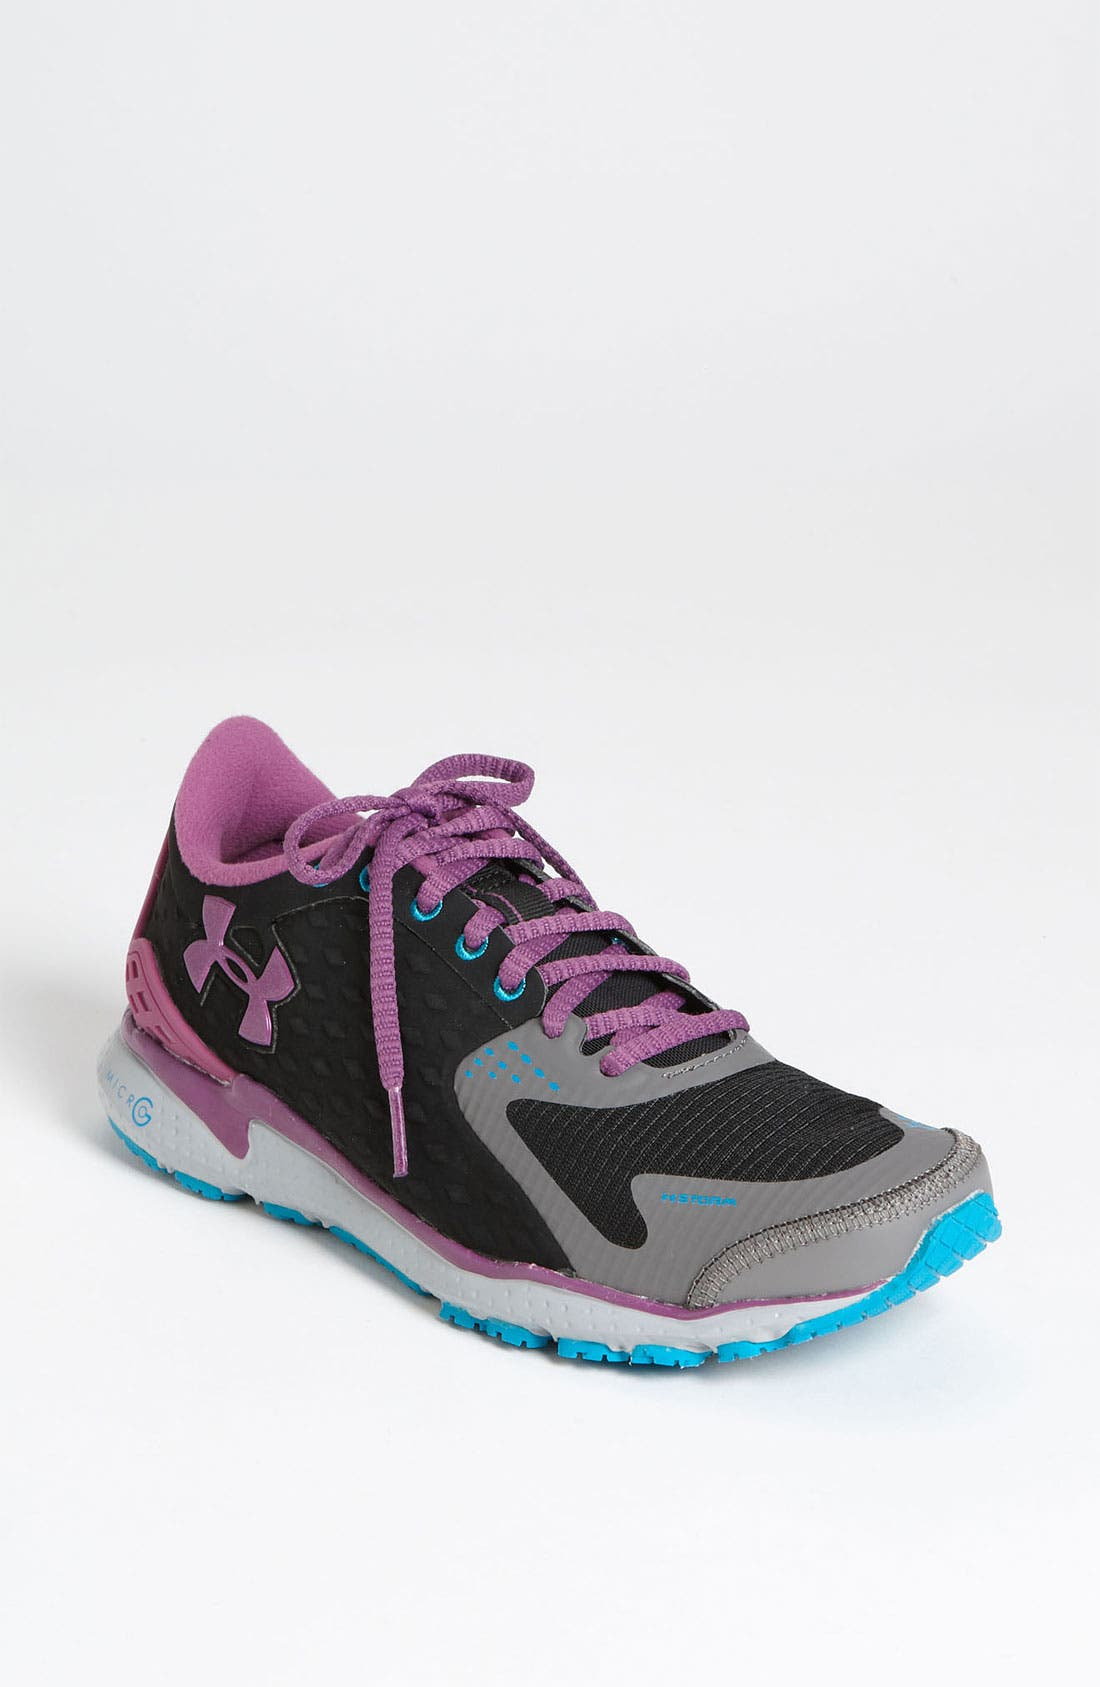 Main Image - Under Armour 'Micro G®' Running Shoe (Women)